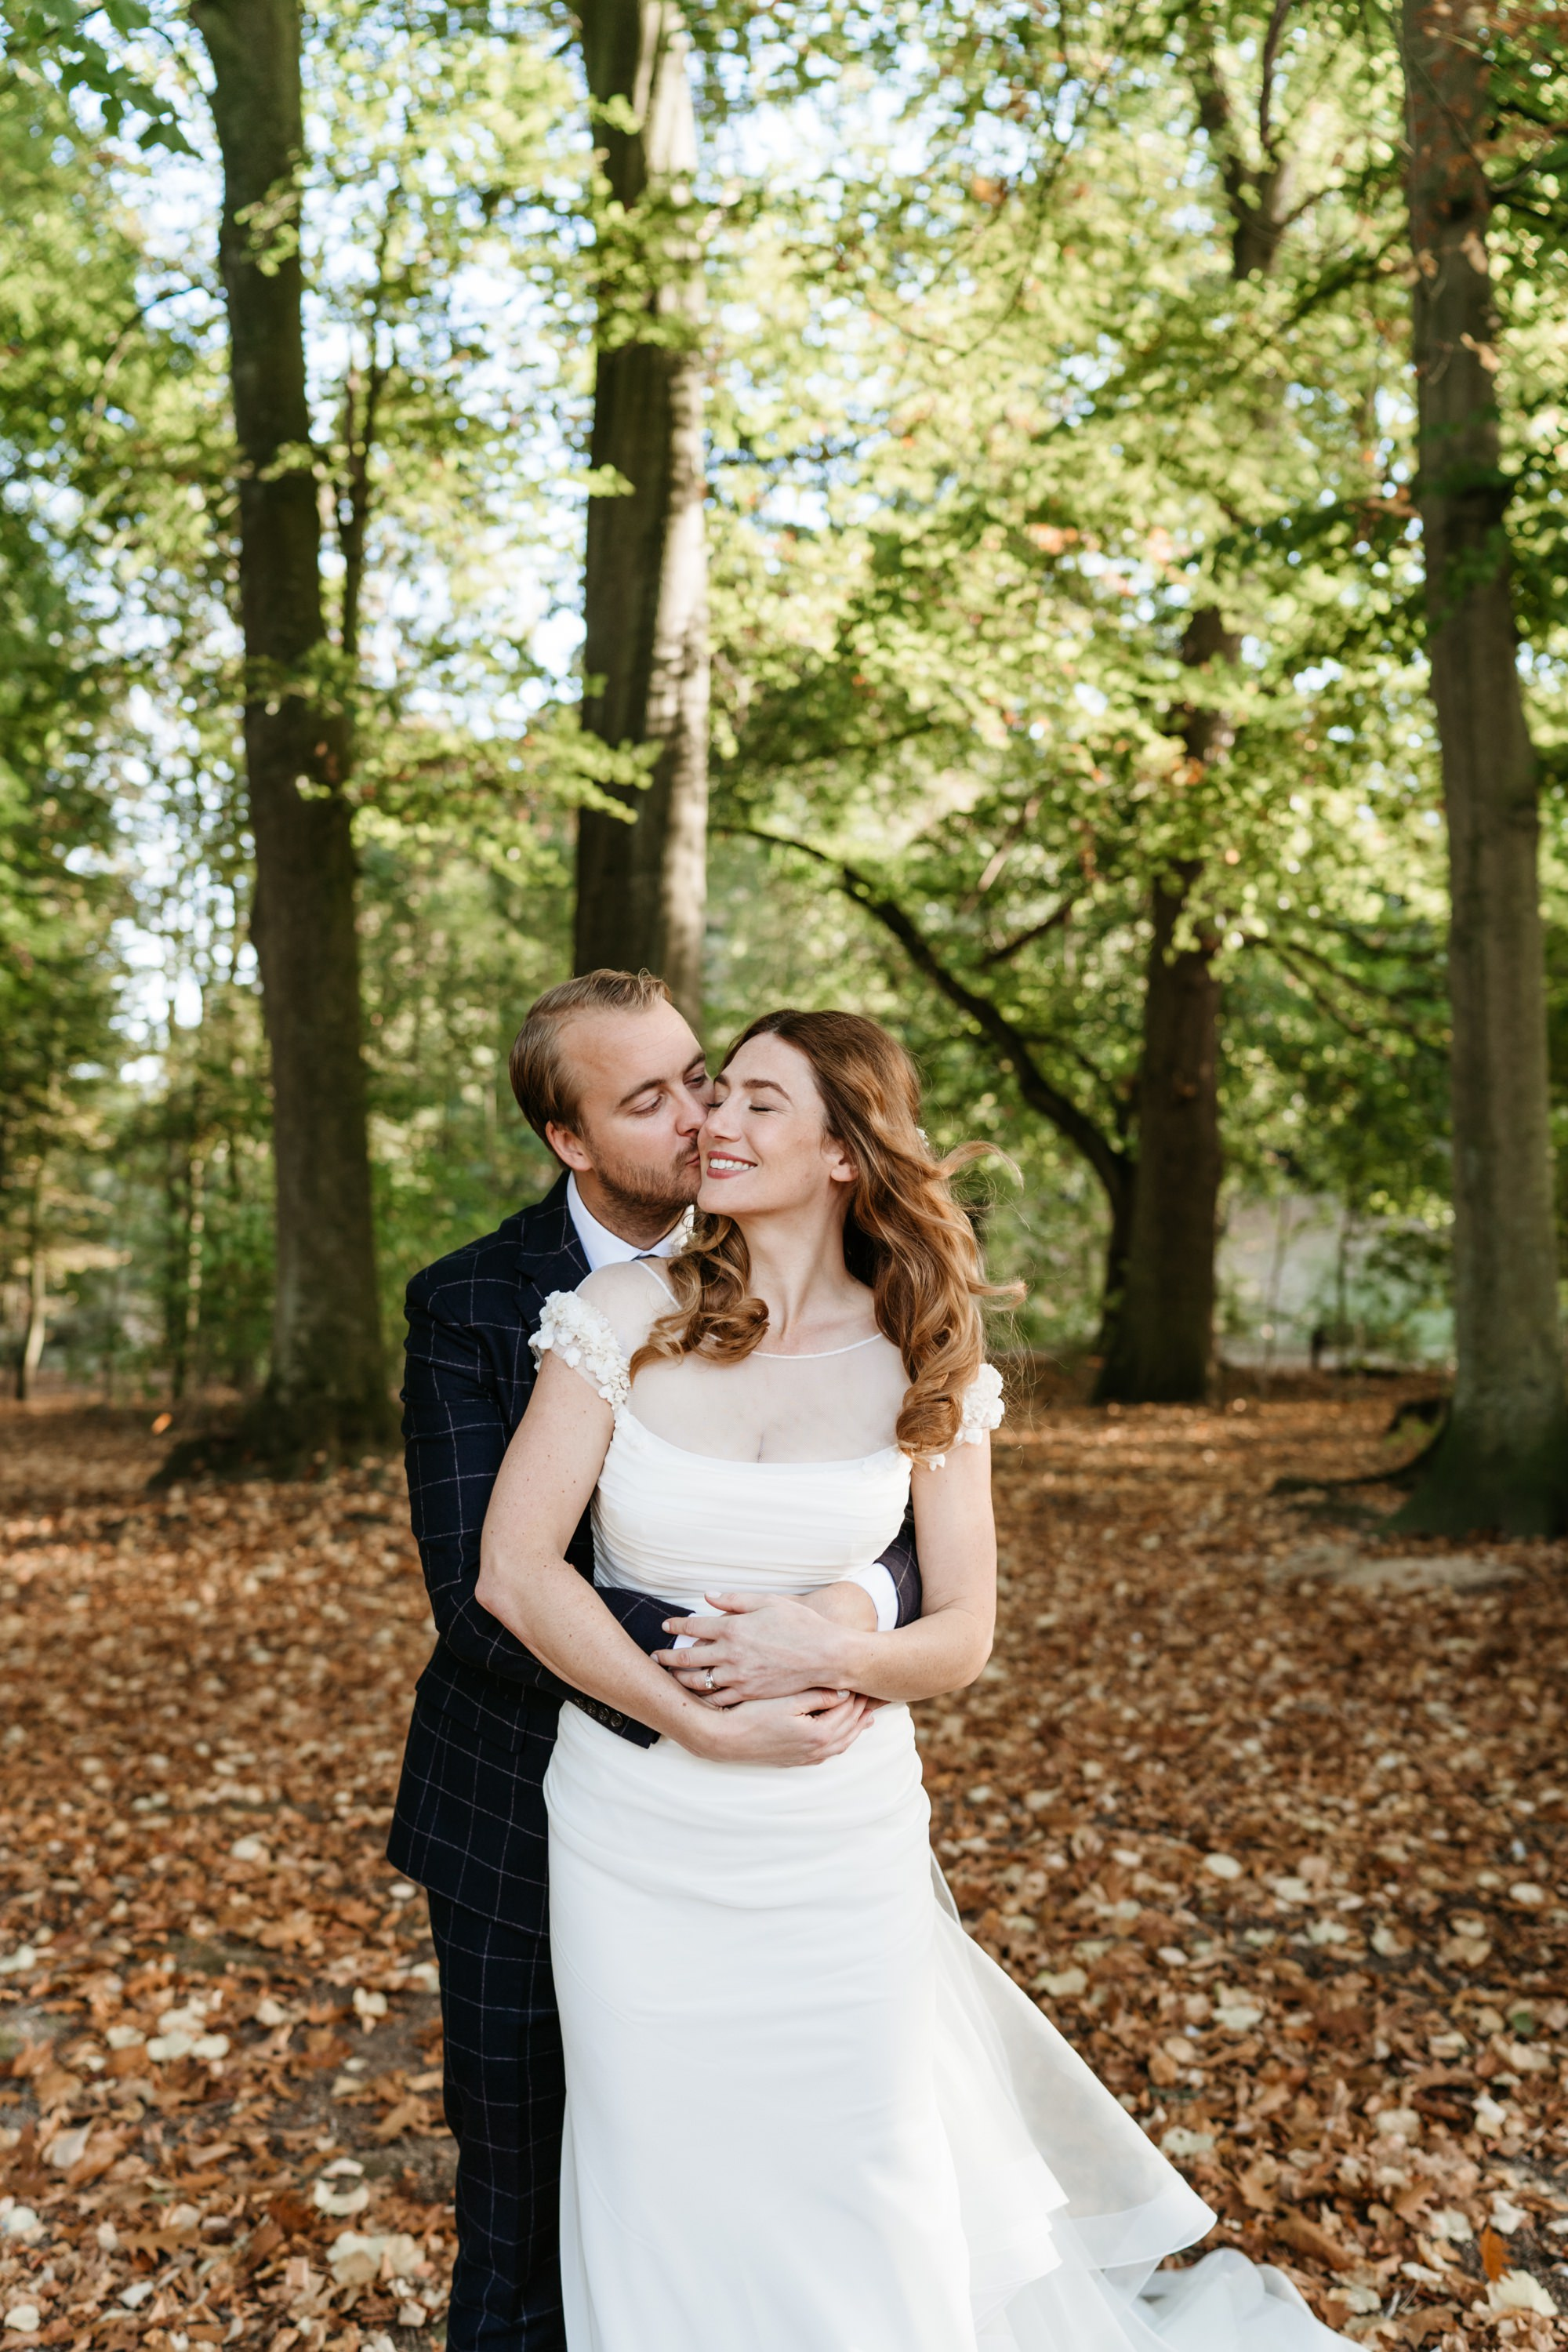 natural wedding photography bruselas 0041 1